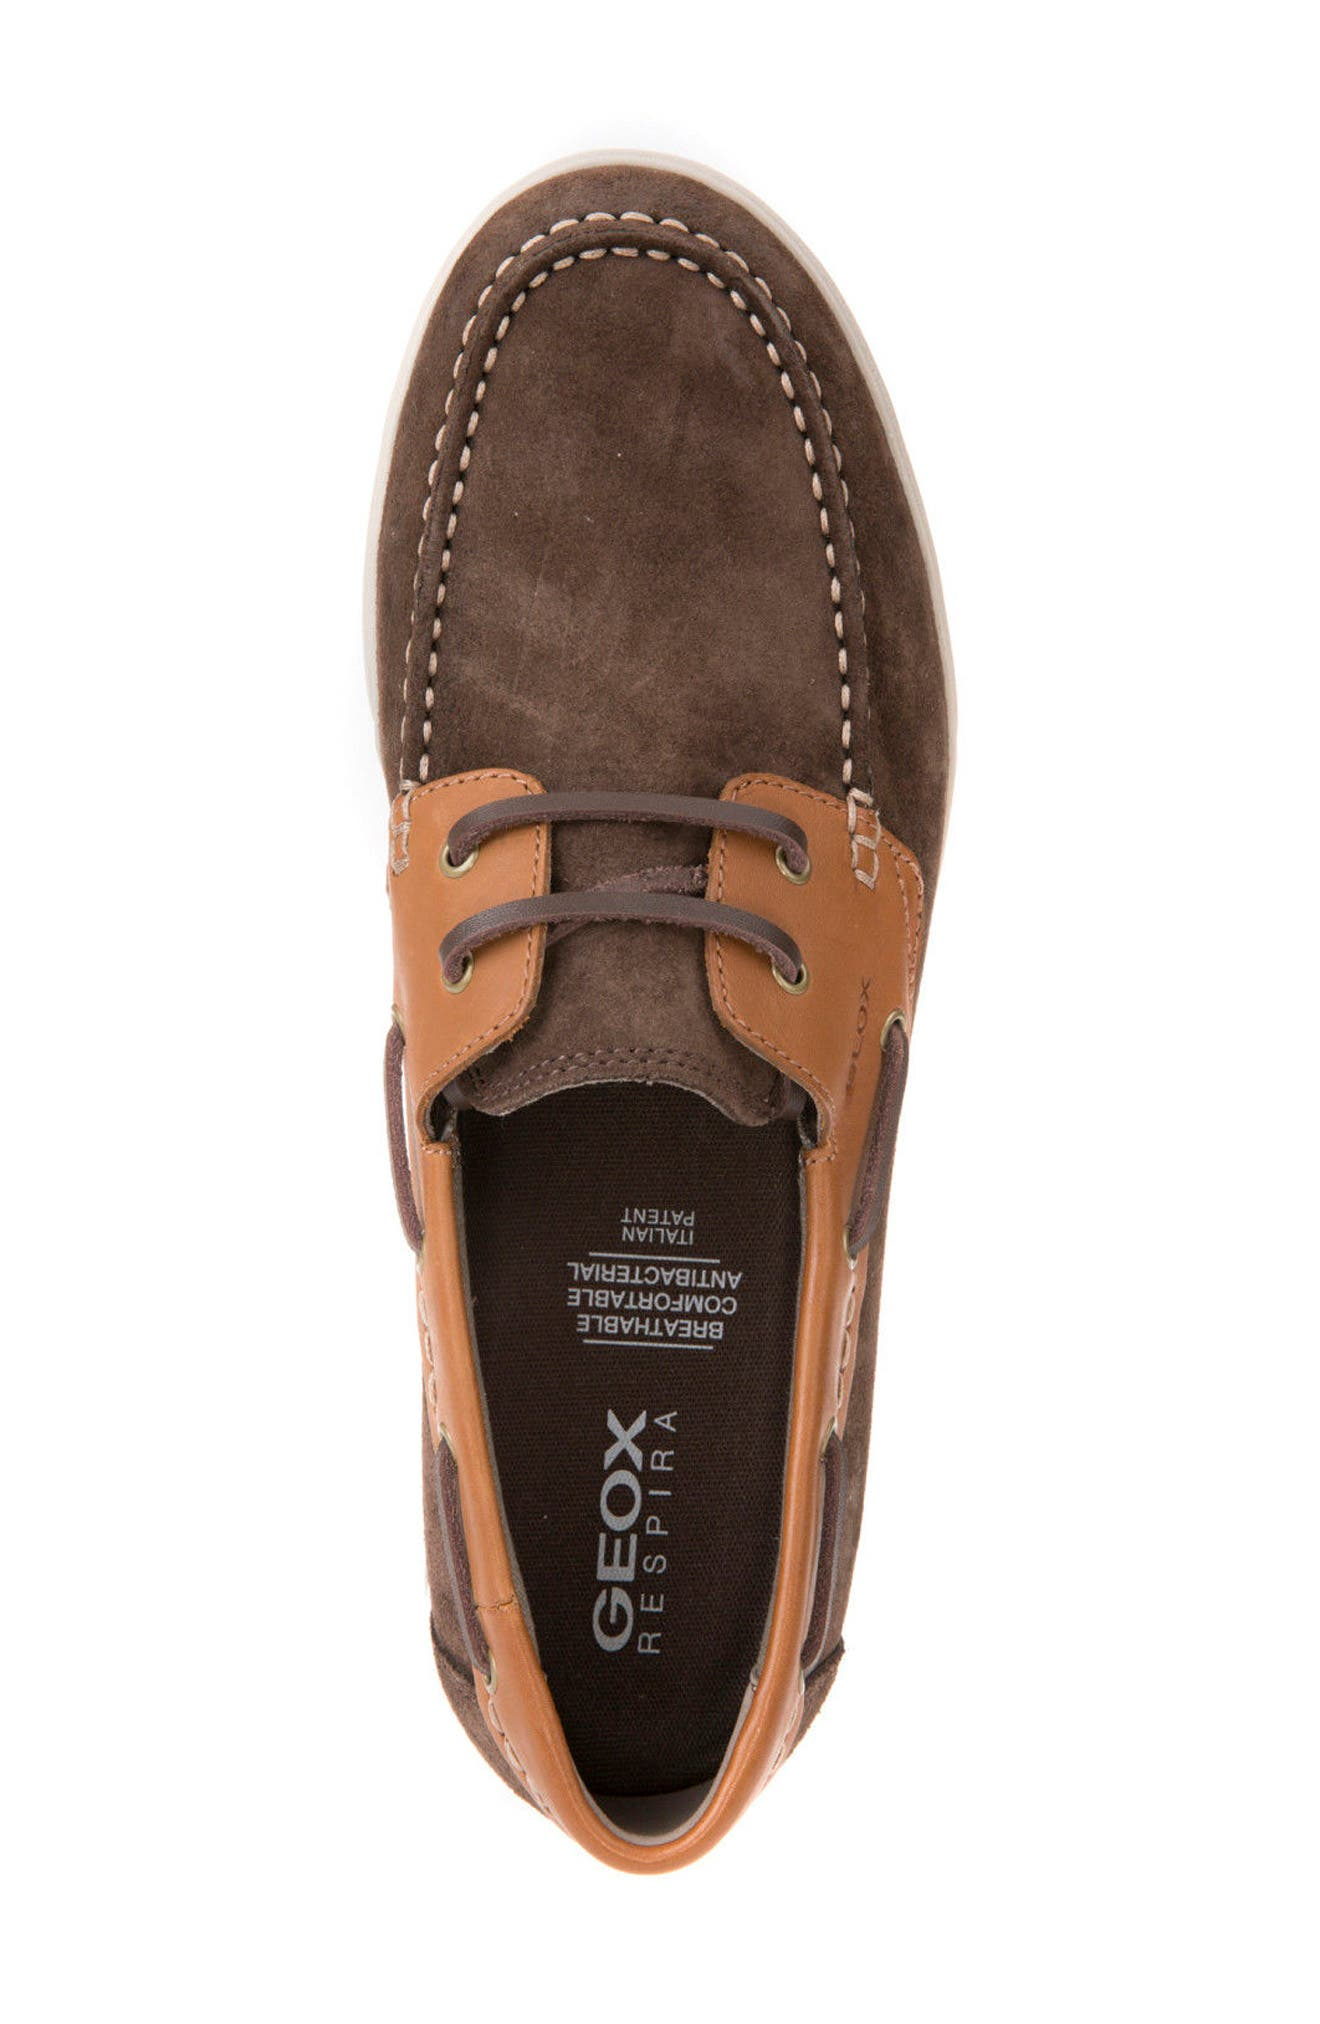 Walee 2 Boat Shoe,                             Alternate thumbnail 5, color,                             200